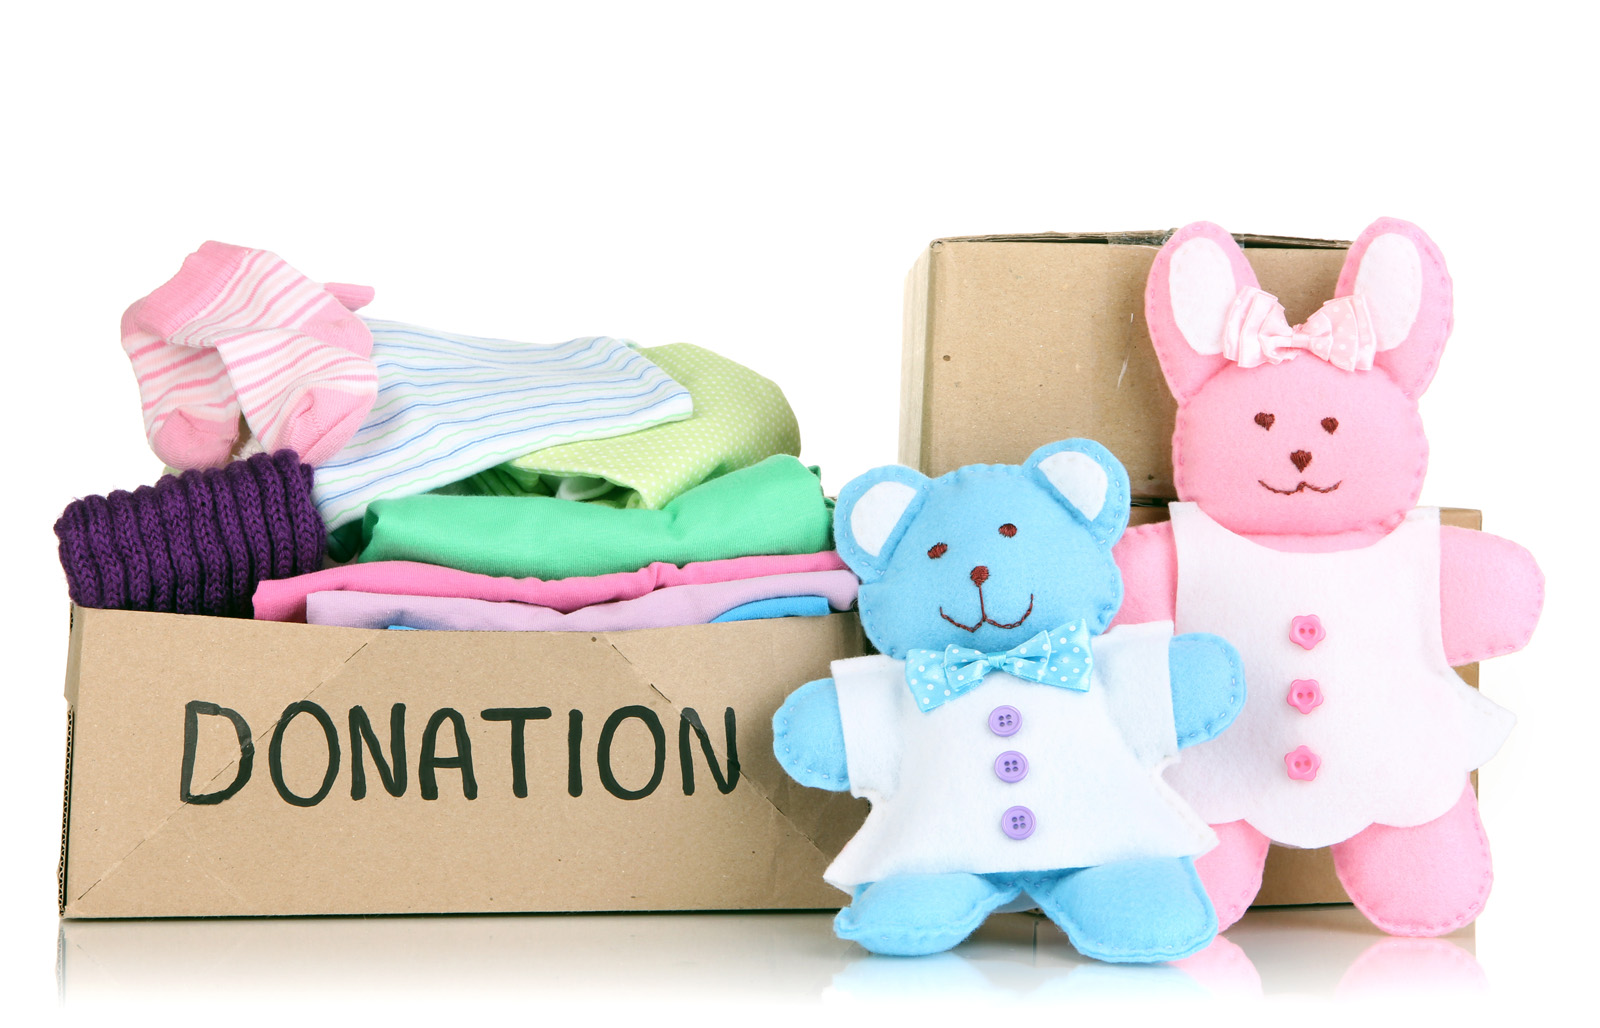 Box with donations for kids